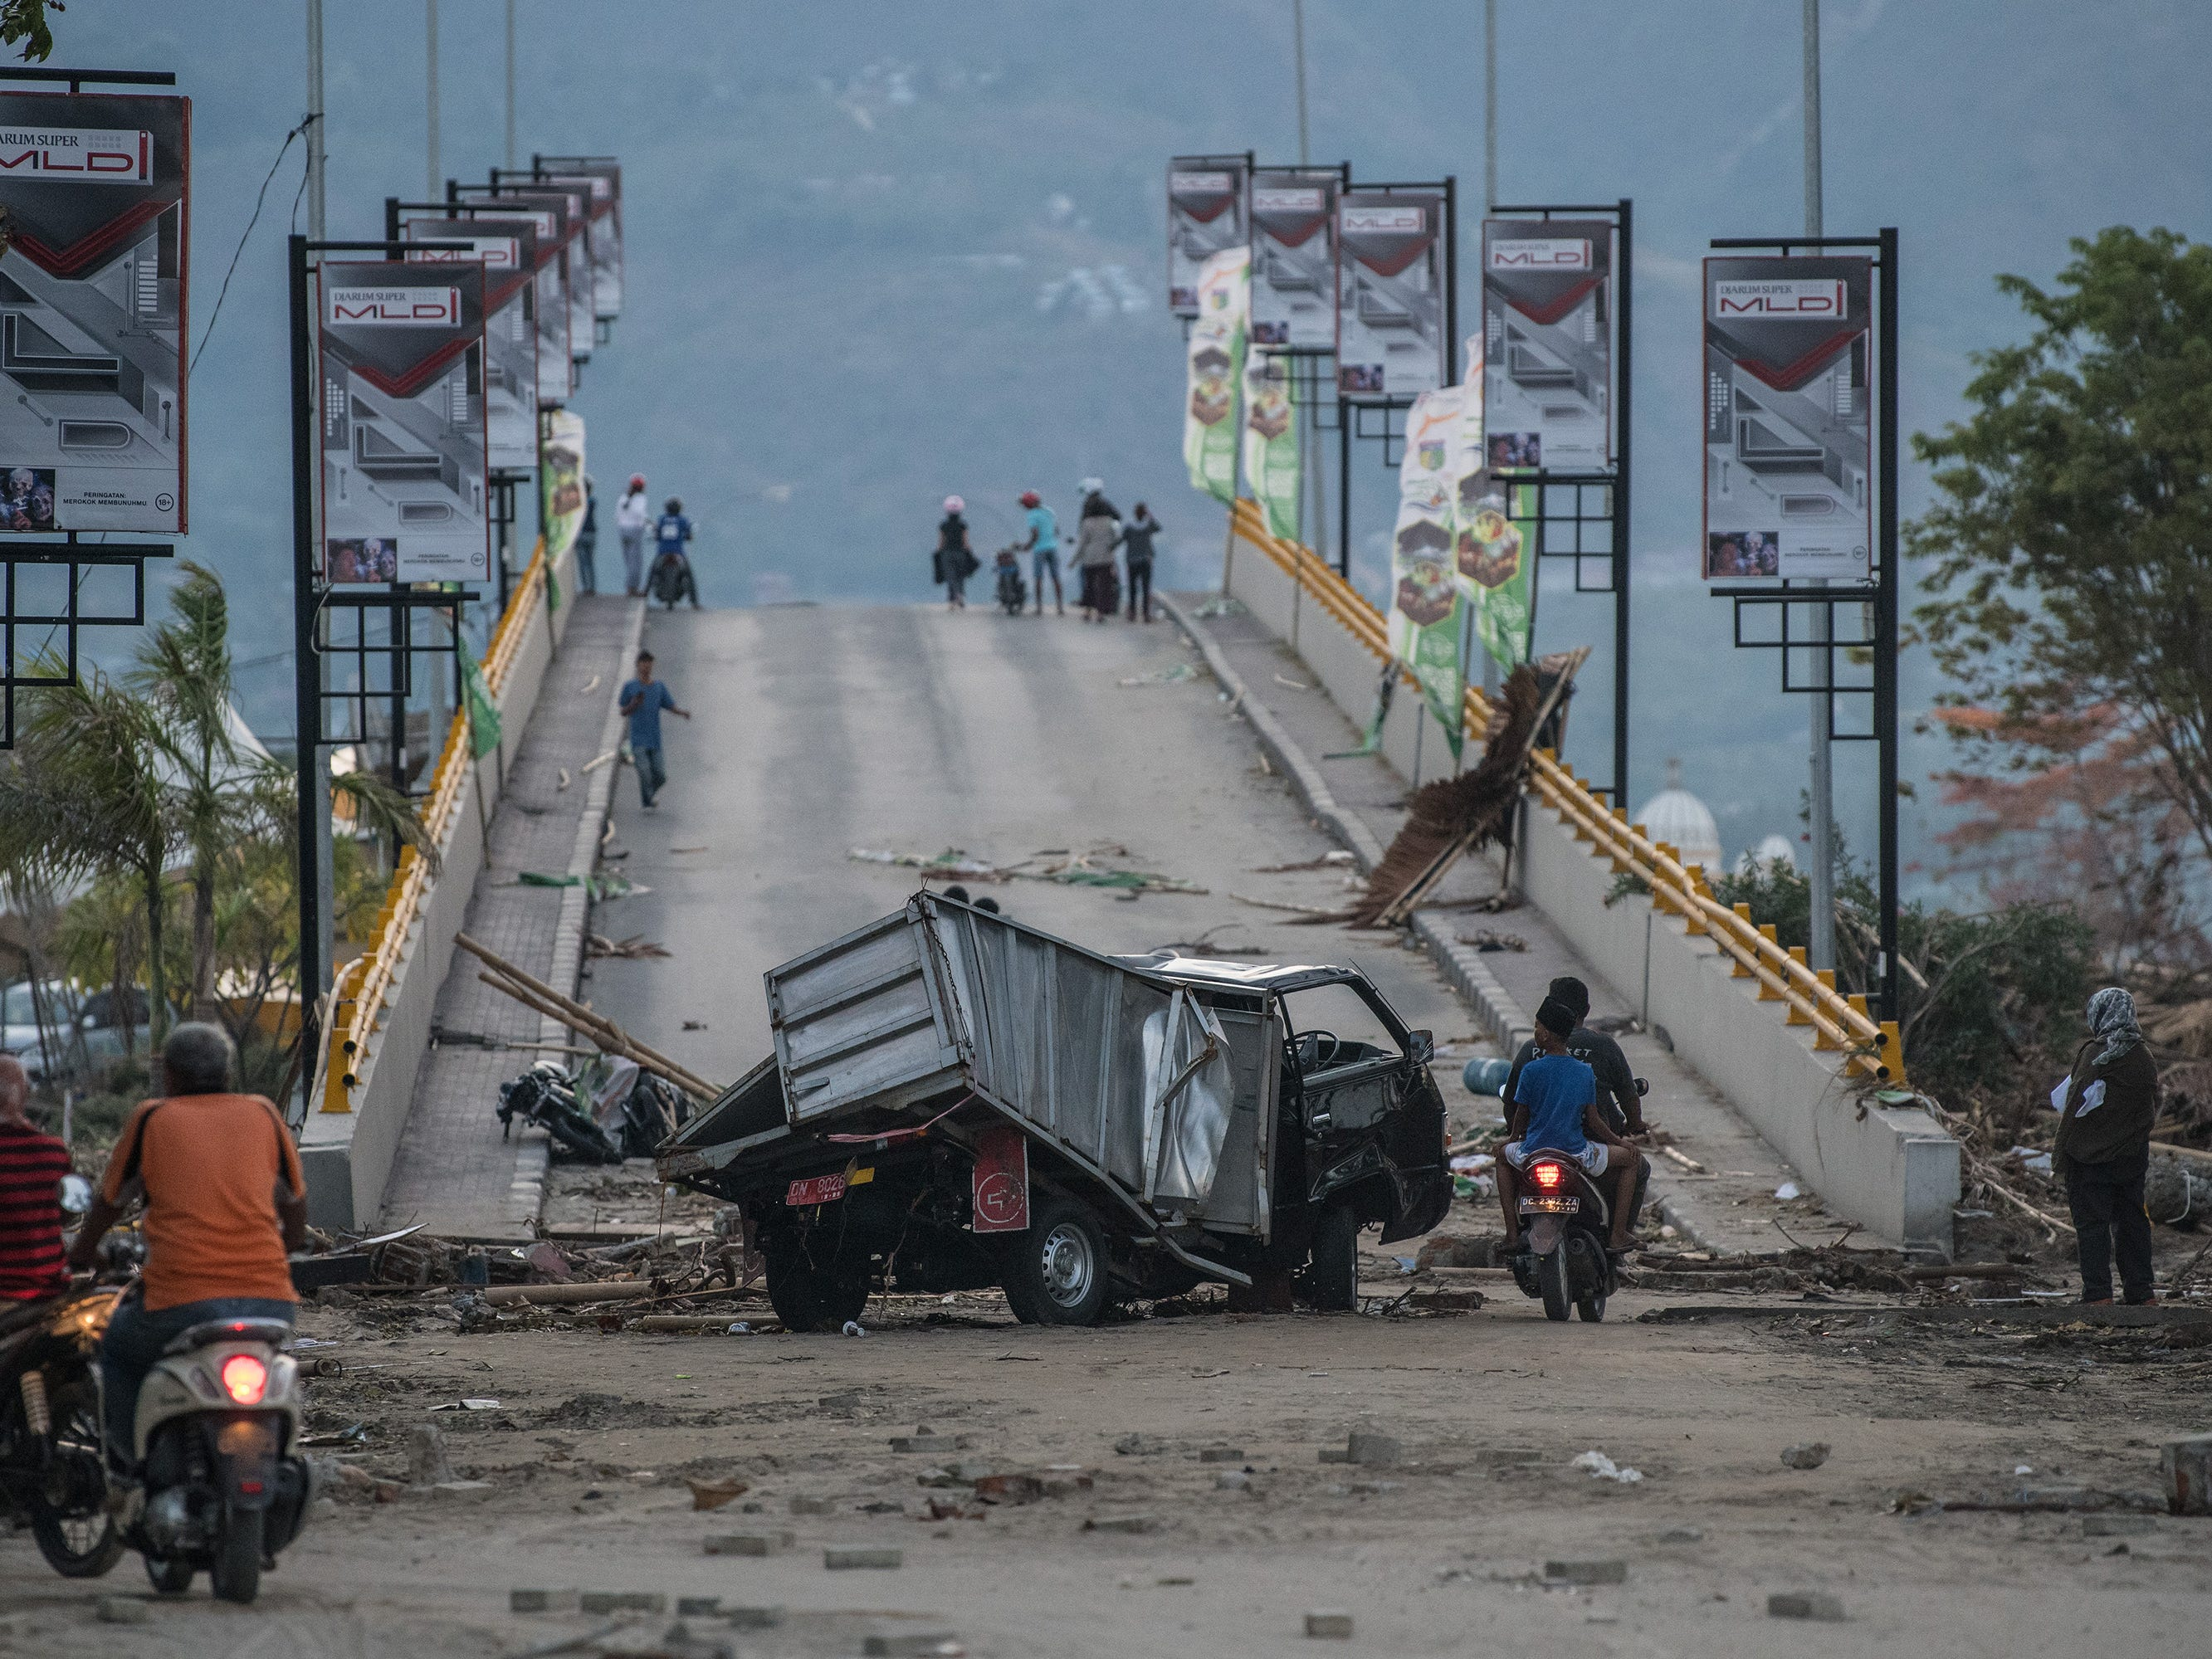 PALU, INDONESIA - OCTOBER 01: A smashed vehicle lies at the foot of a bridge that has been destroyed by a tsunami, on October 01, 2018 in Palu, Indonesia. Over 844 people have been confirmed dead after a tsunami triggered by a magnitude 7.5 earthquake slammed into Indonesia's coastline on the island of Sulawesi, causing thousands of homes to collapse, along with hospitals, hotels and shopping centers. Emergency services fear that the death toll could rise into the thousands as rescue teams made contact with the nearby cities of Donggala and Mamuju and strong aftershocks continue to rock the city.